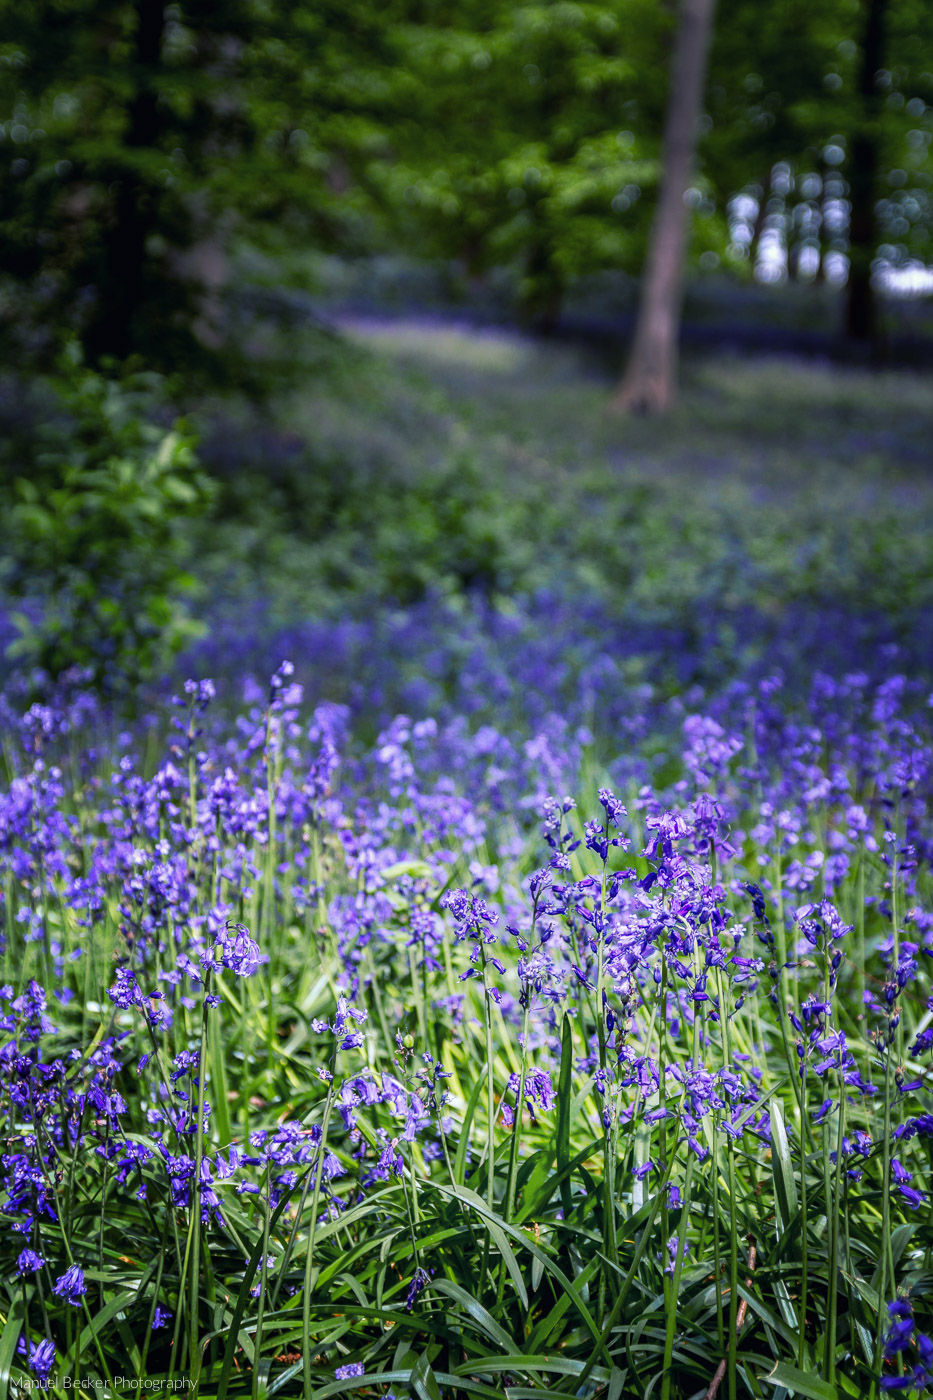 Bluebell wood, Hückelhoven, Germany